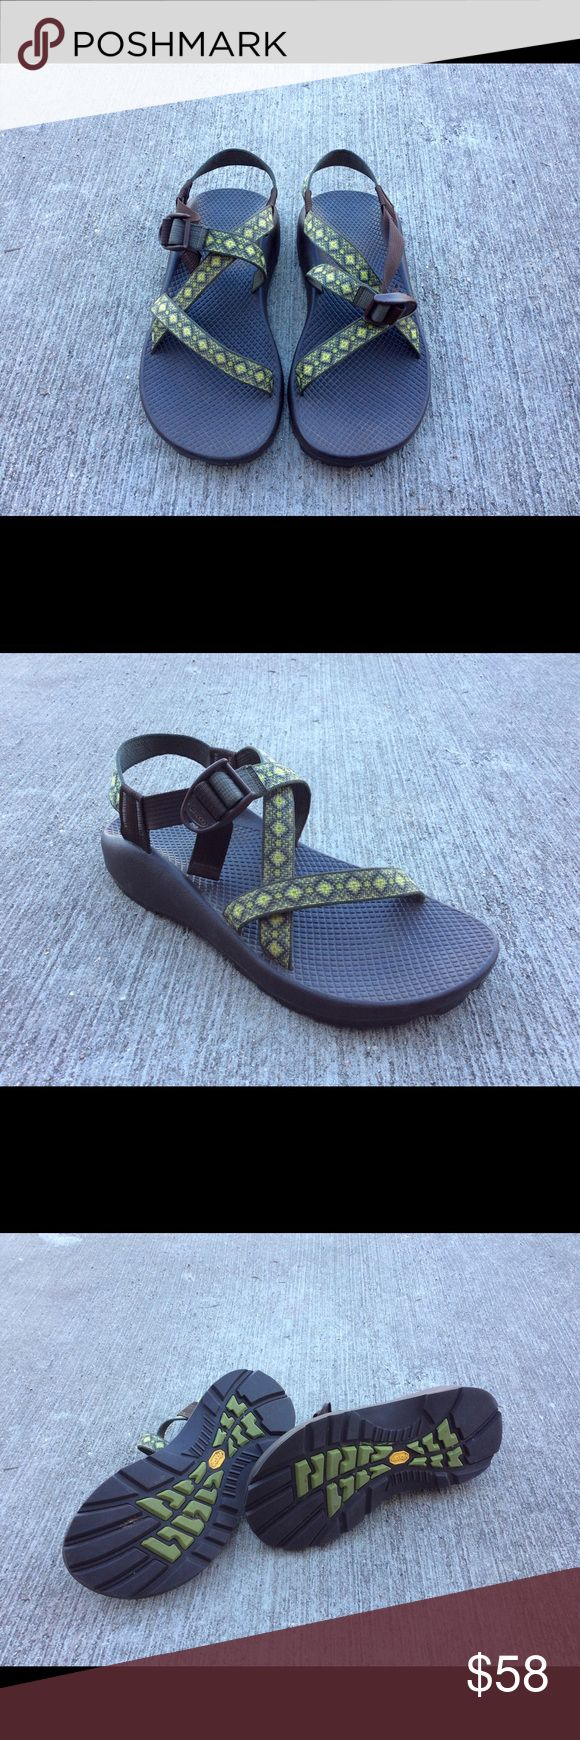 Chacos Sandal Women's 9 Green One Strap Chacos Sandal in women's size 9. Perfect condition with no flaws or imperfections Chacos Shoes Sandals